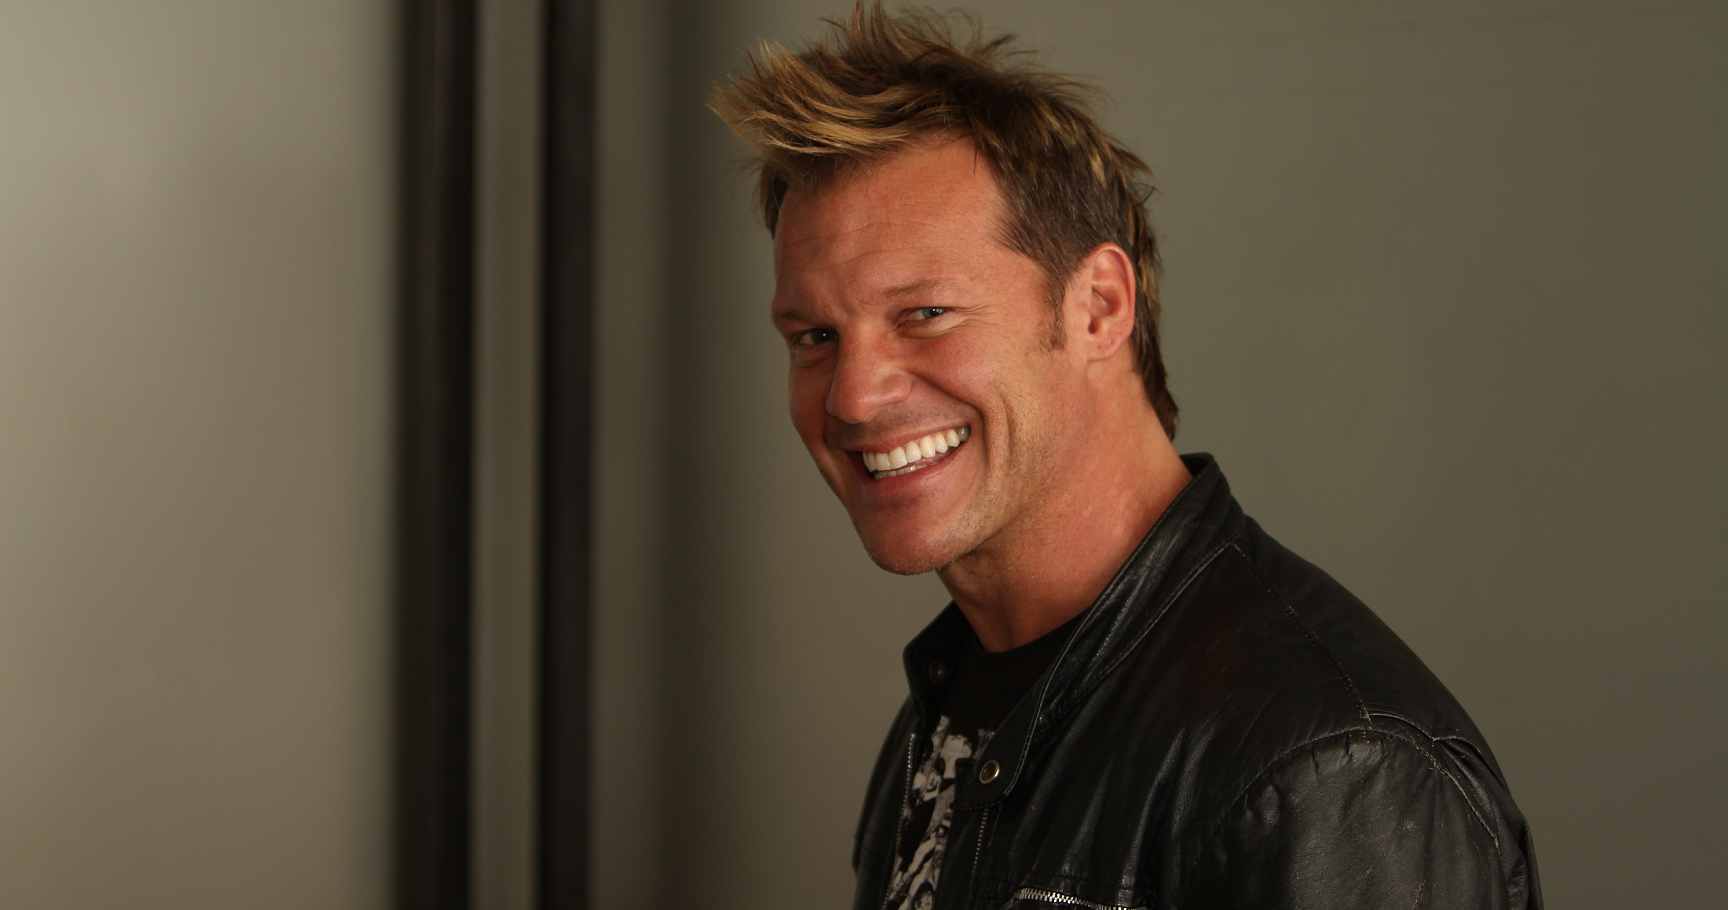 Chris Jericho 2015 Chris Jericho Reveals Wwe